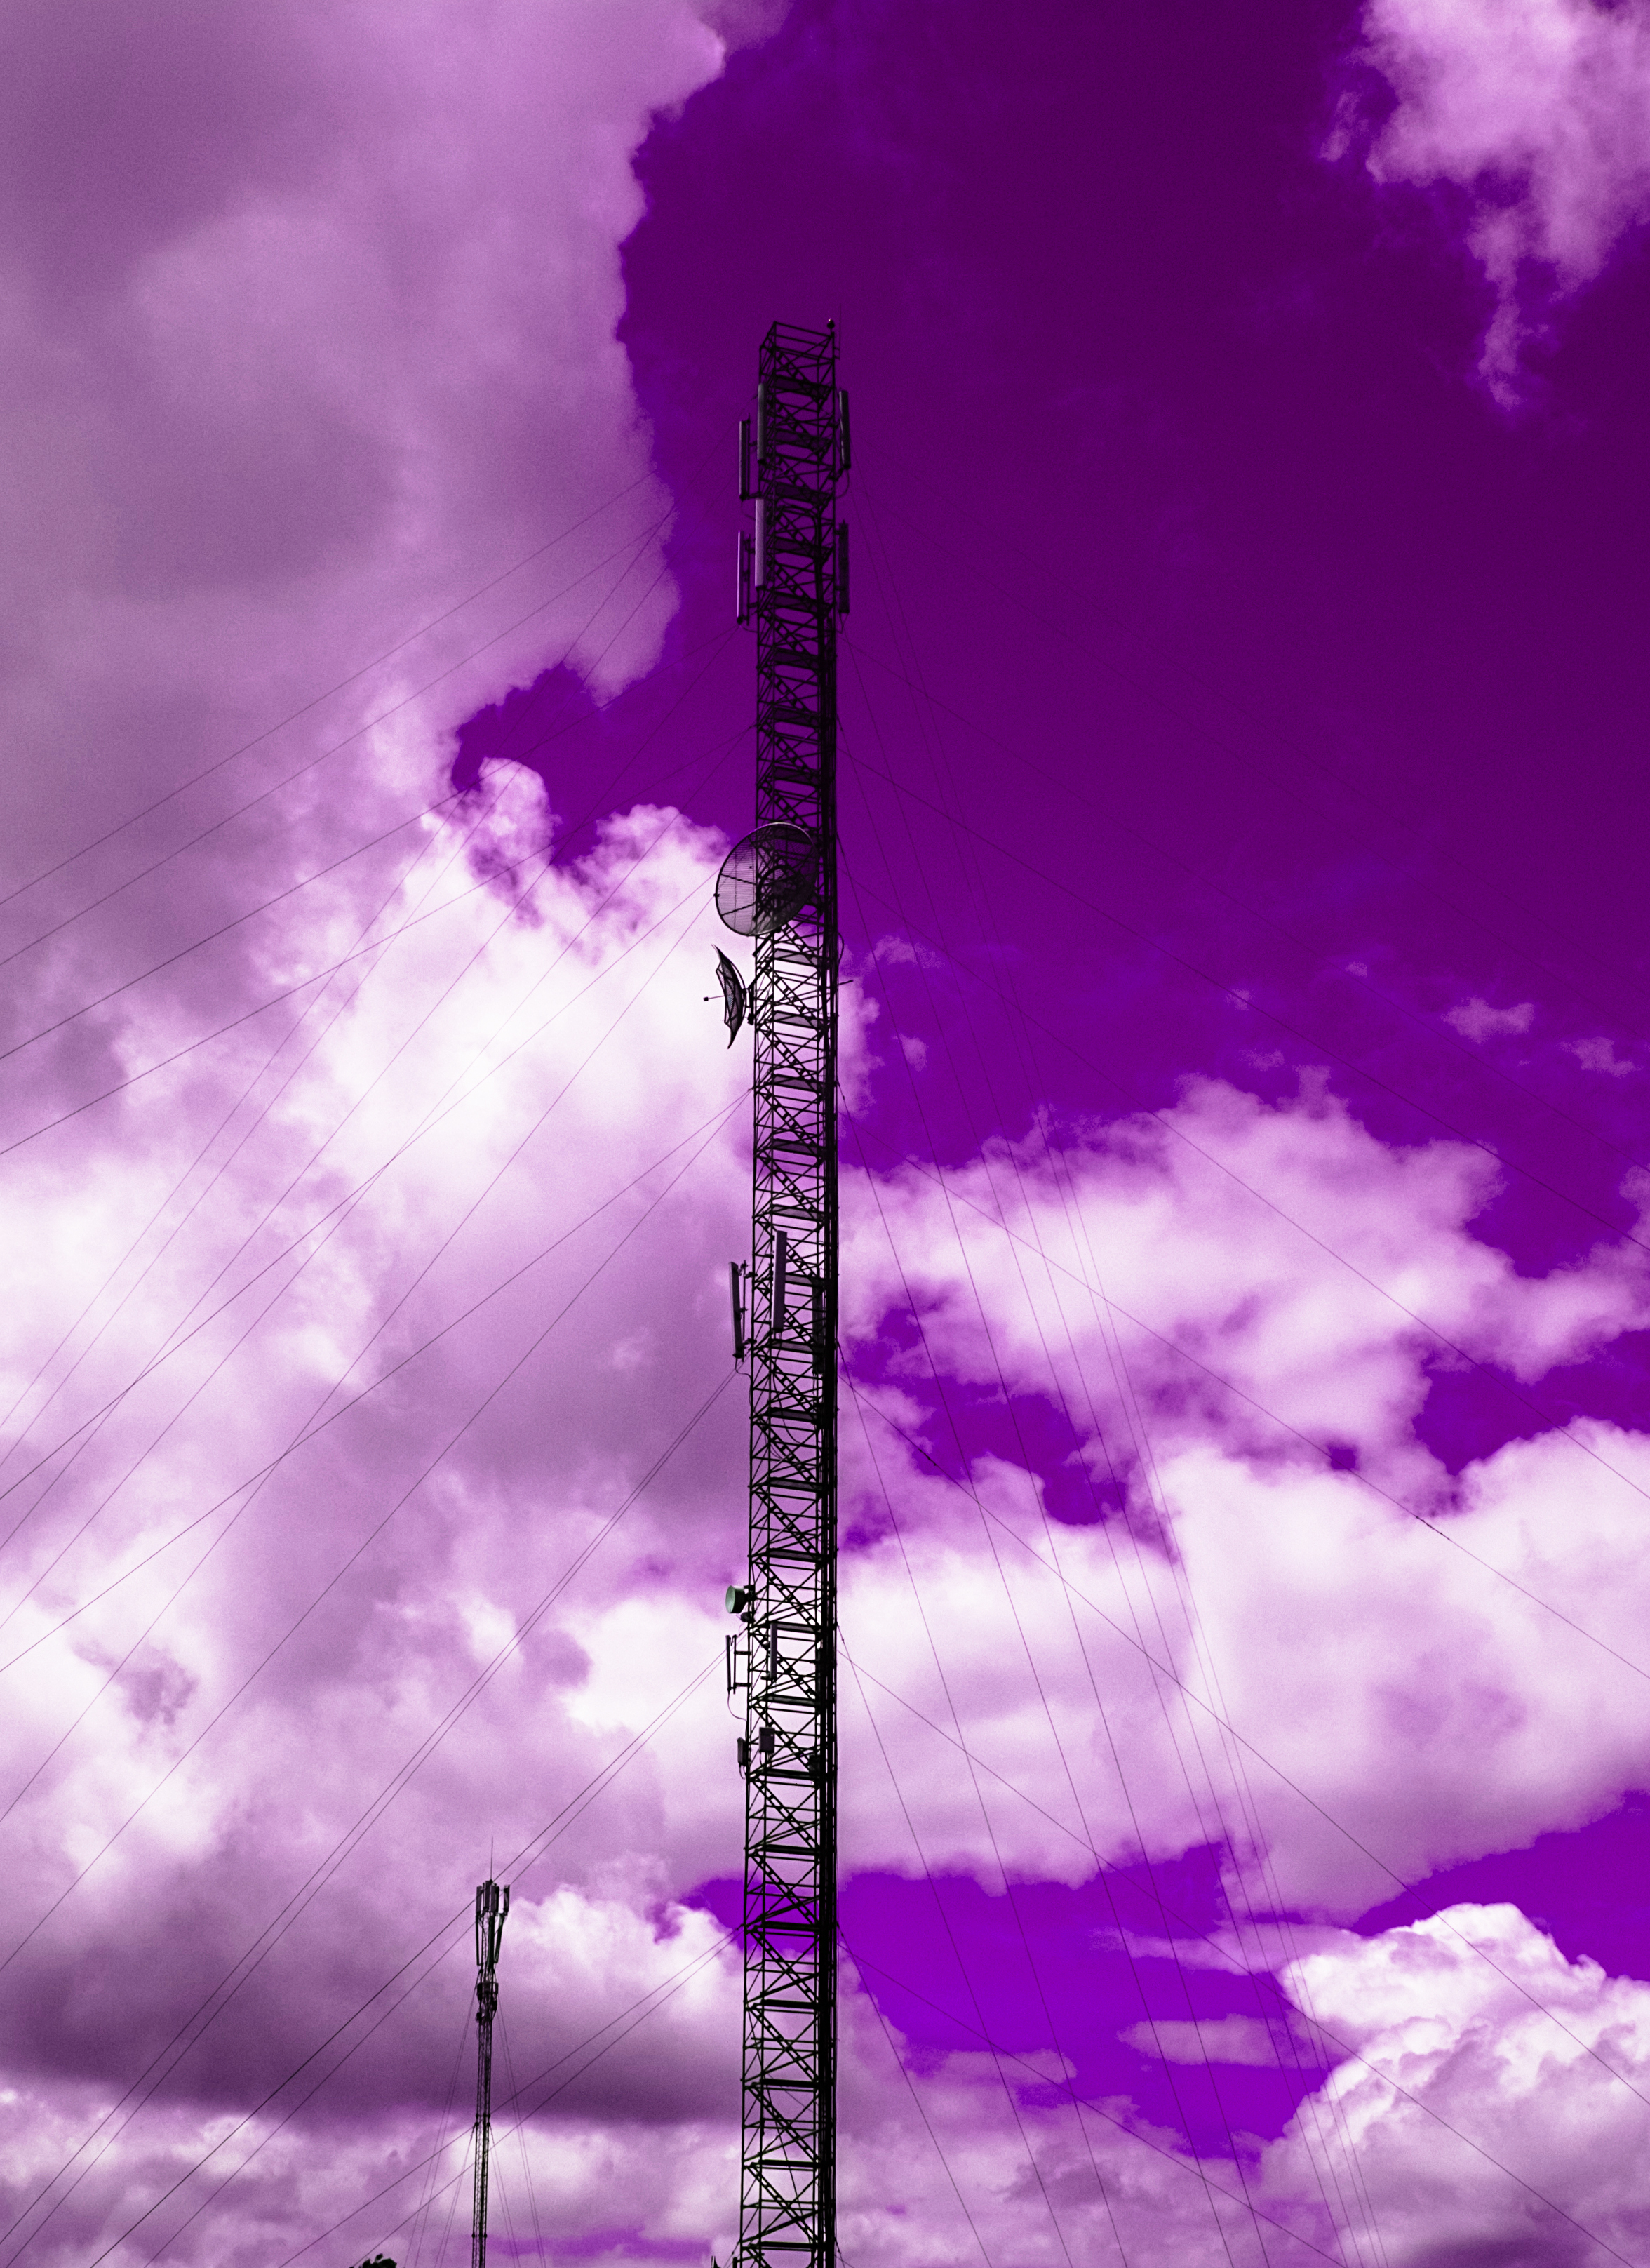 Power poles under the purple sky